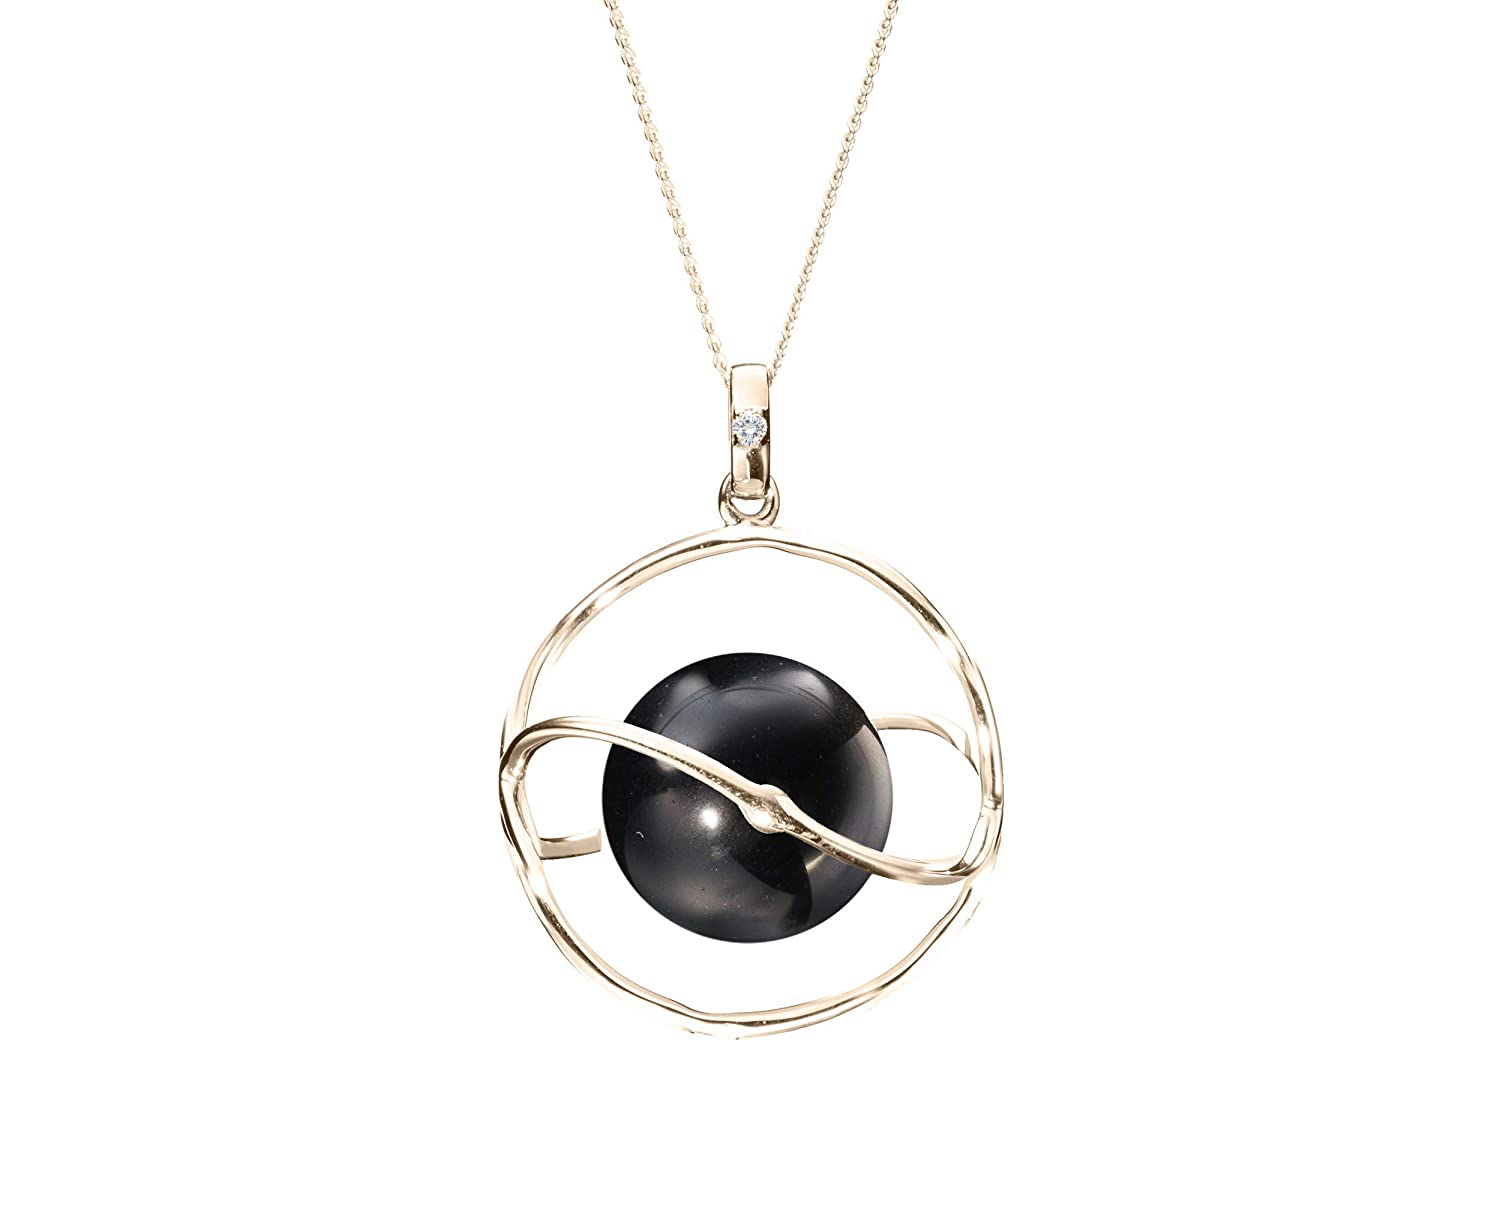 Gift for woman Black tourmaline necklace Black stone Black Tourmaline Sets Healing stone jewelry Gold Black Tourmaline Jewelry Set